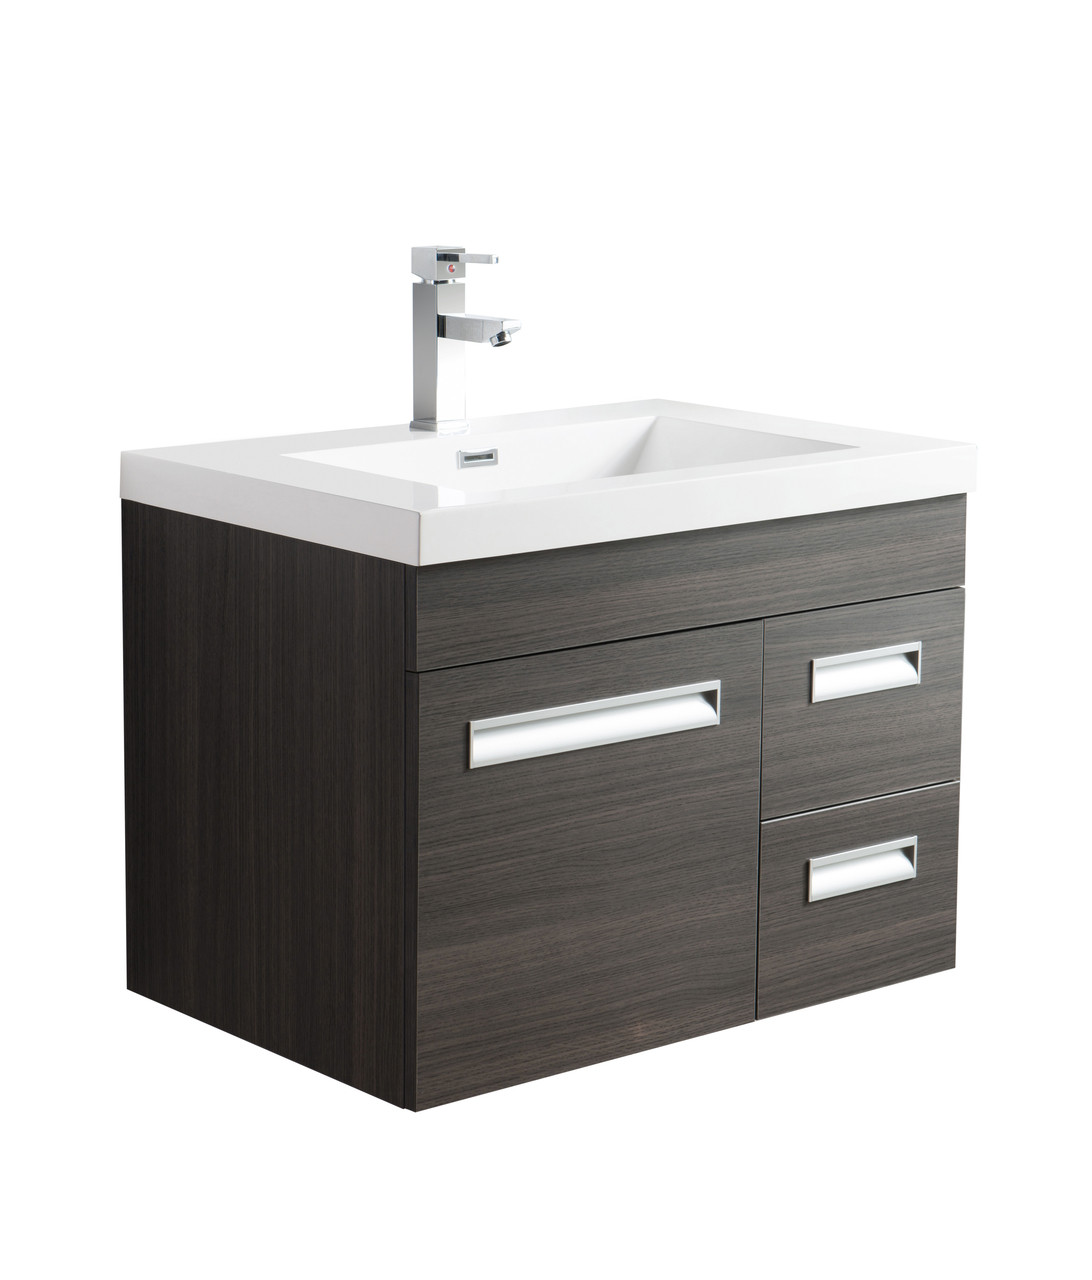 Alma 30 Grey Oak Wall Hung Right Side Modern Bathroom Vanity Bathroom Vanities Wholesale Inc